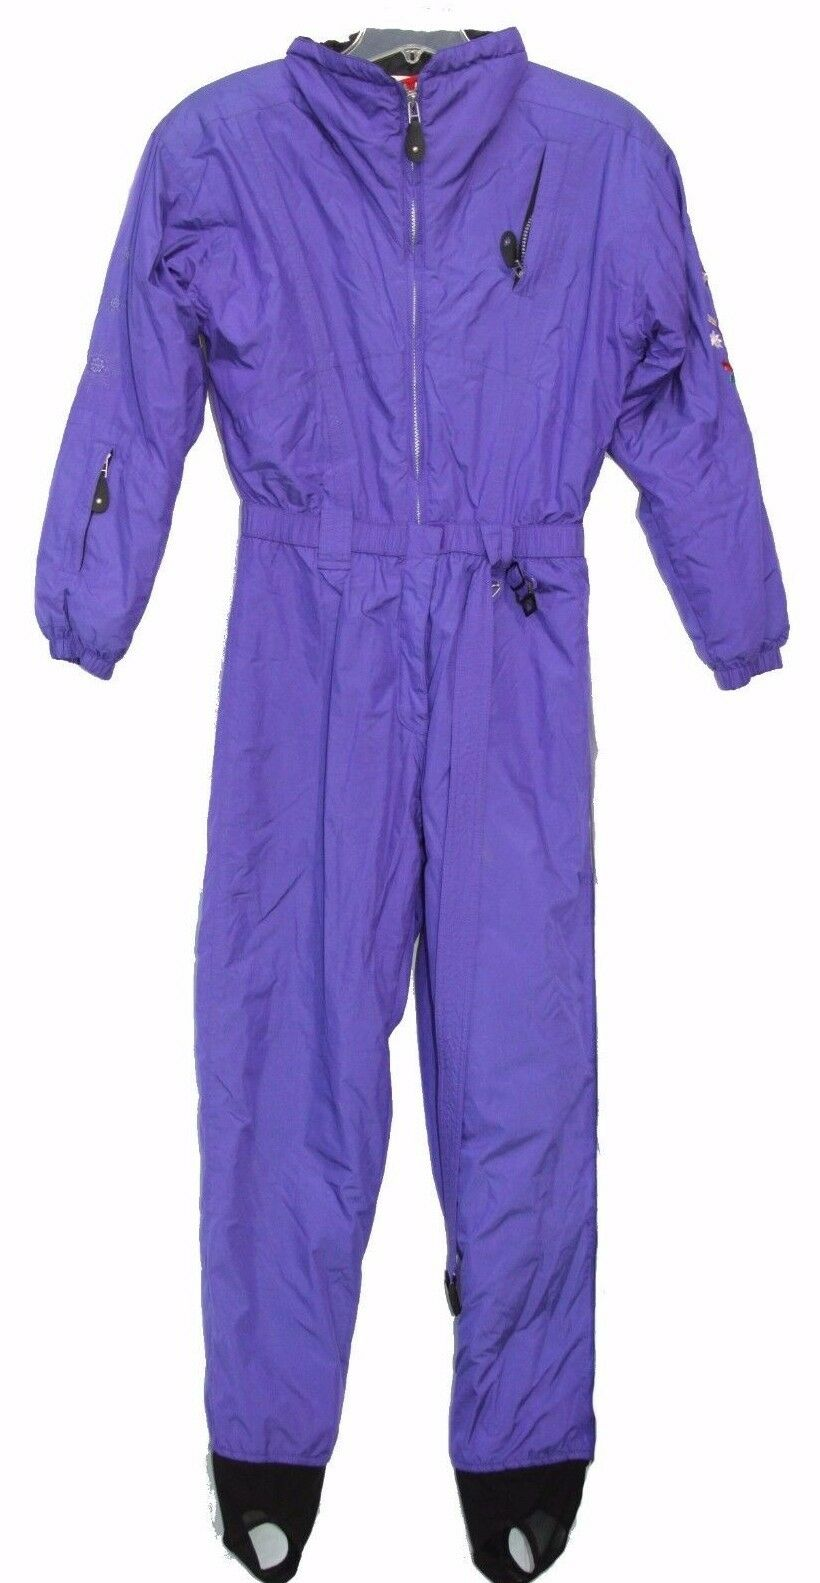 Obermeyer Womens  Isabella Ski Snow Suit Sz 8 Purple  welcome to choose